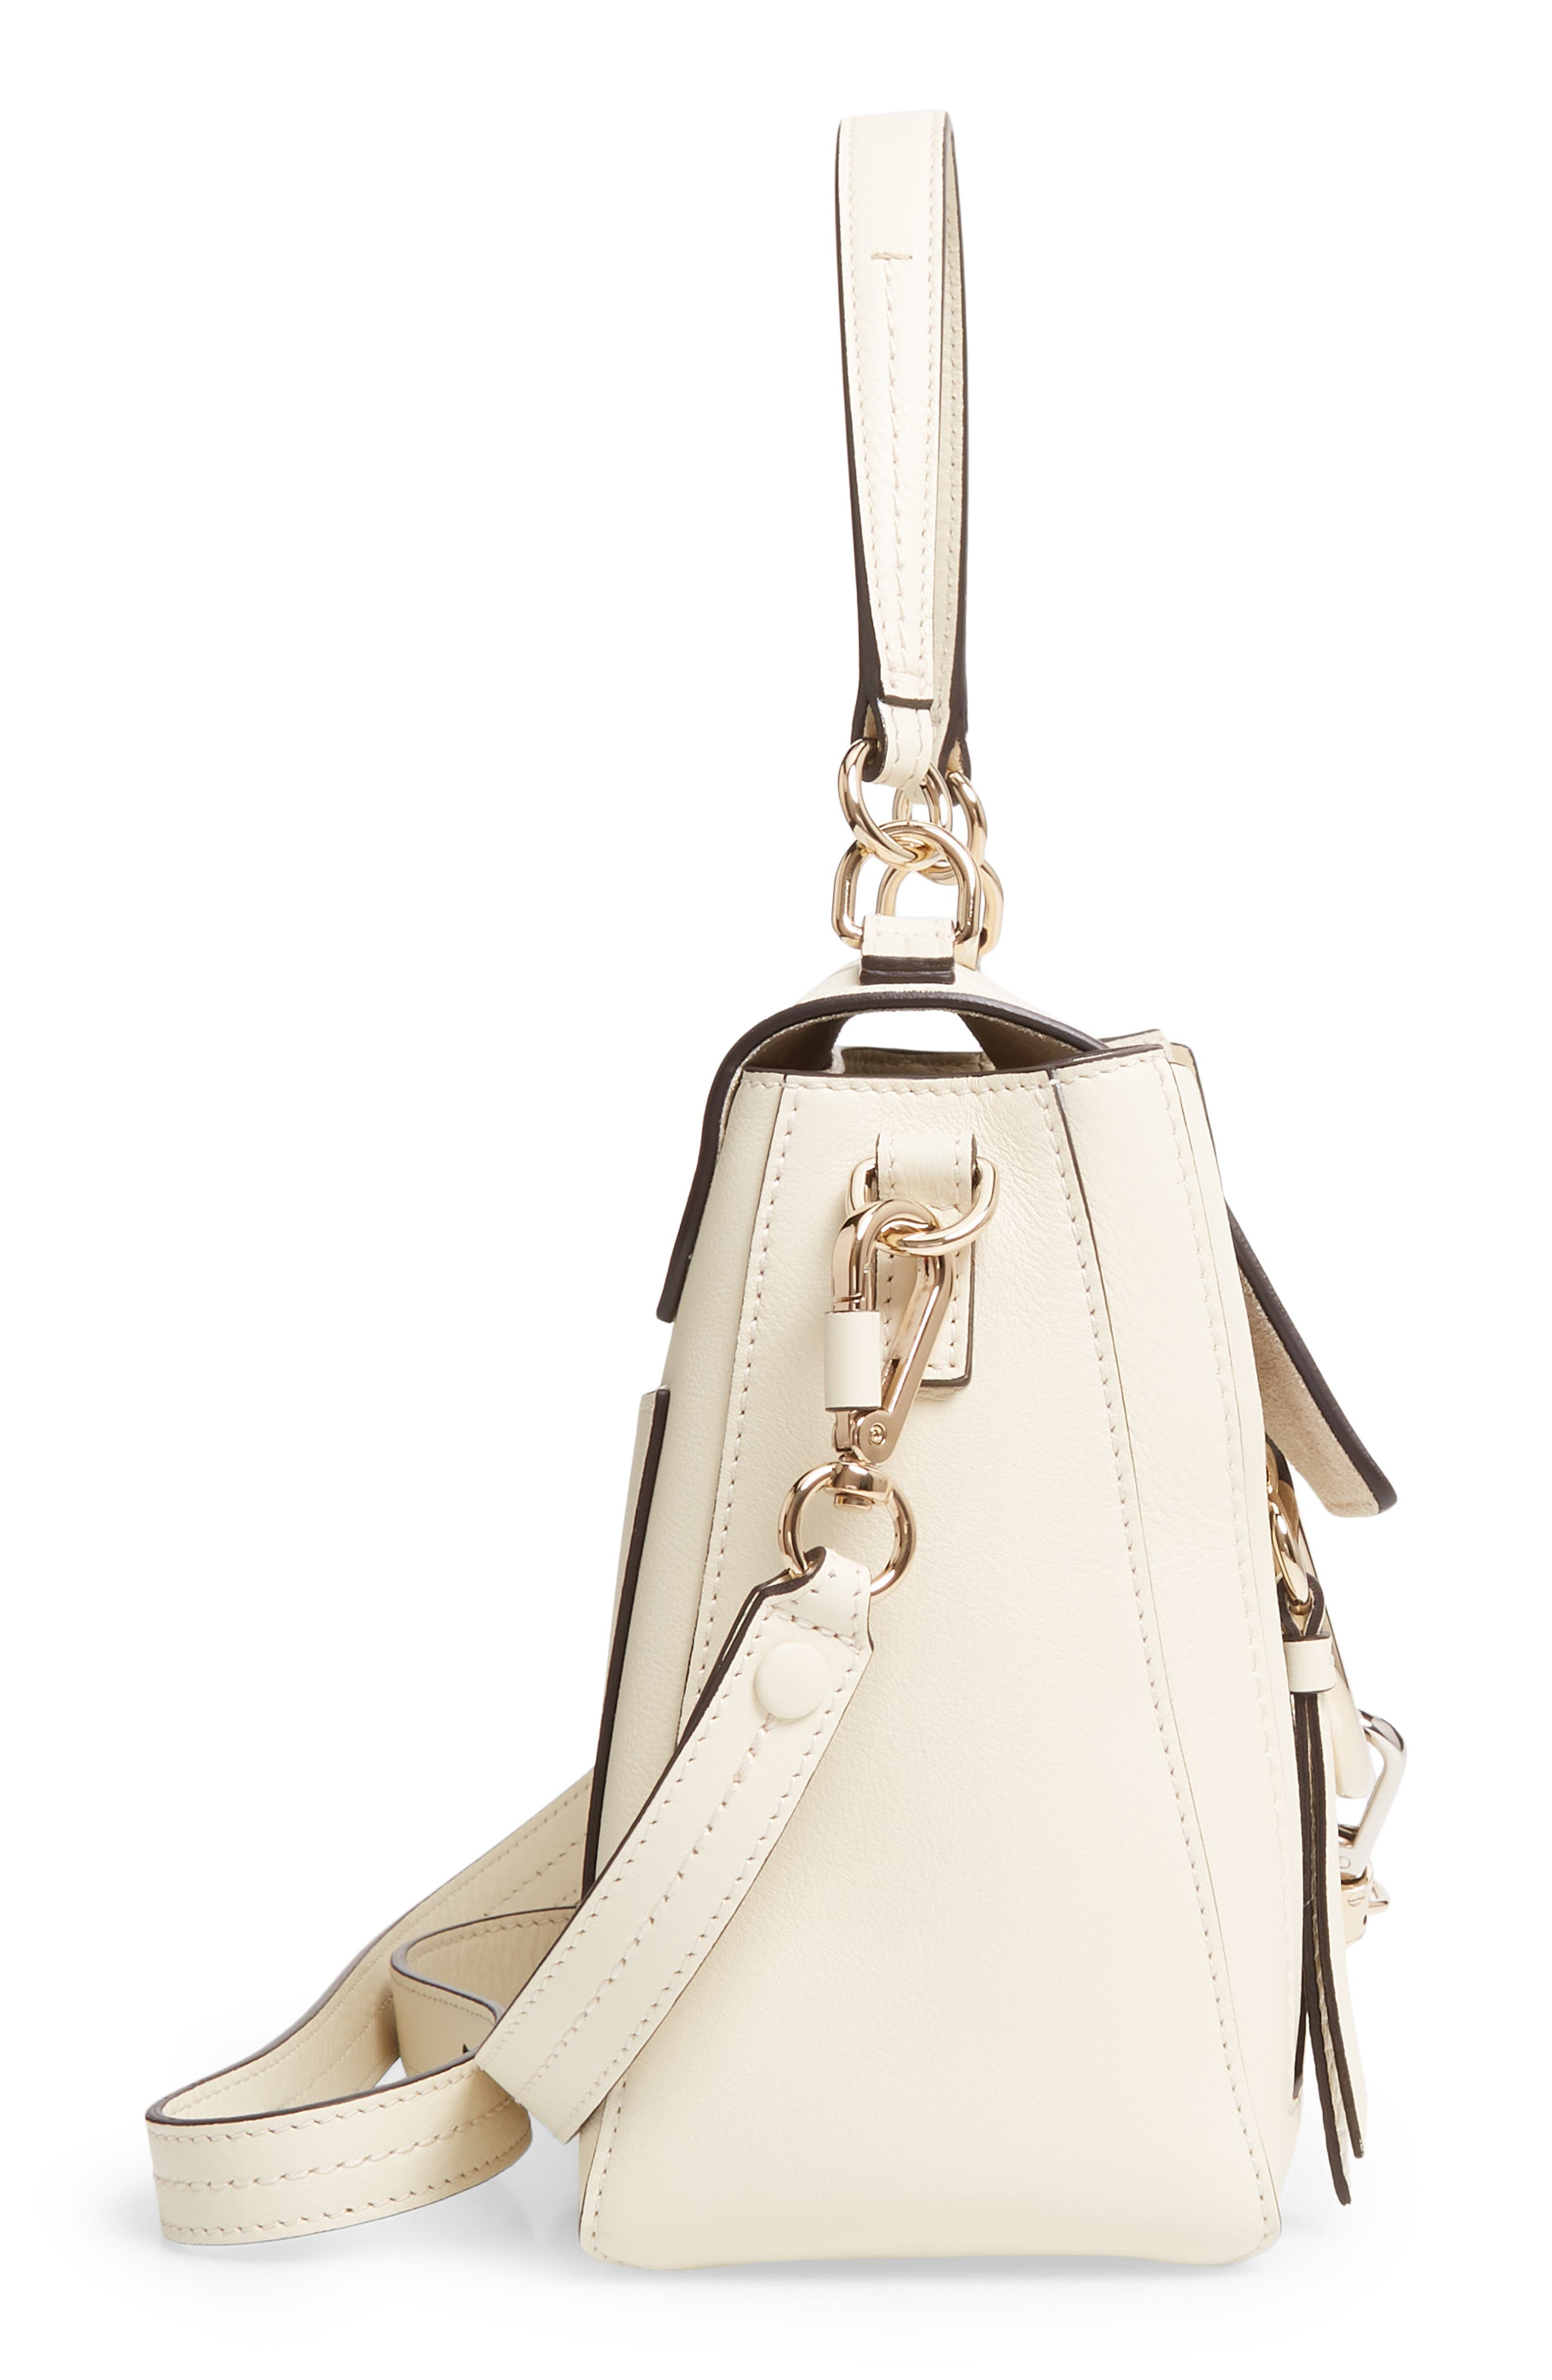 CHLOÉ,                             Small Faye Day Leather Shoulder Bag,                             Alternate thumbnail 5, color,                             905